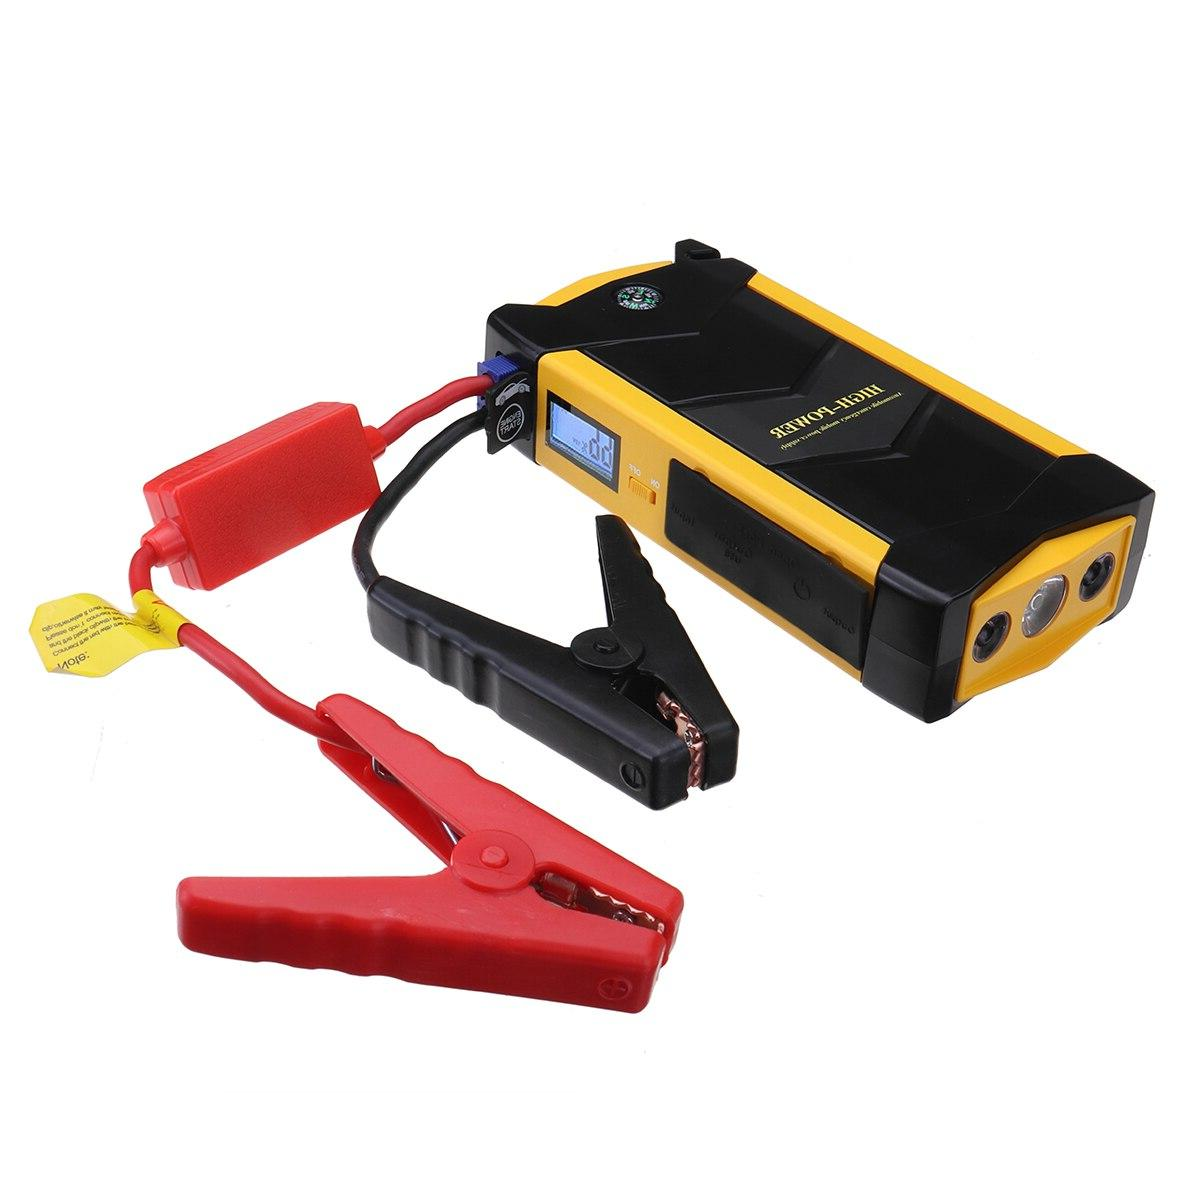 82800mAh High Car <font><b>Jump</b></font> <font><b>Portable</b></font> Starting <font><b>Power</b></font> Car Car <font><b>Battery</b></font> Booster USB